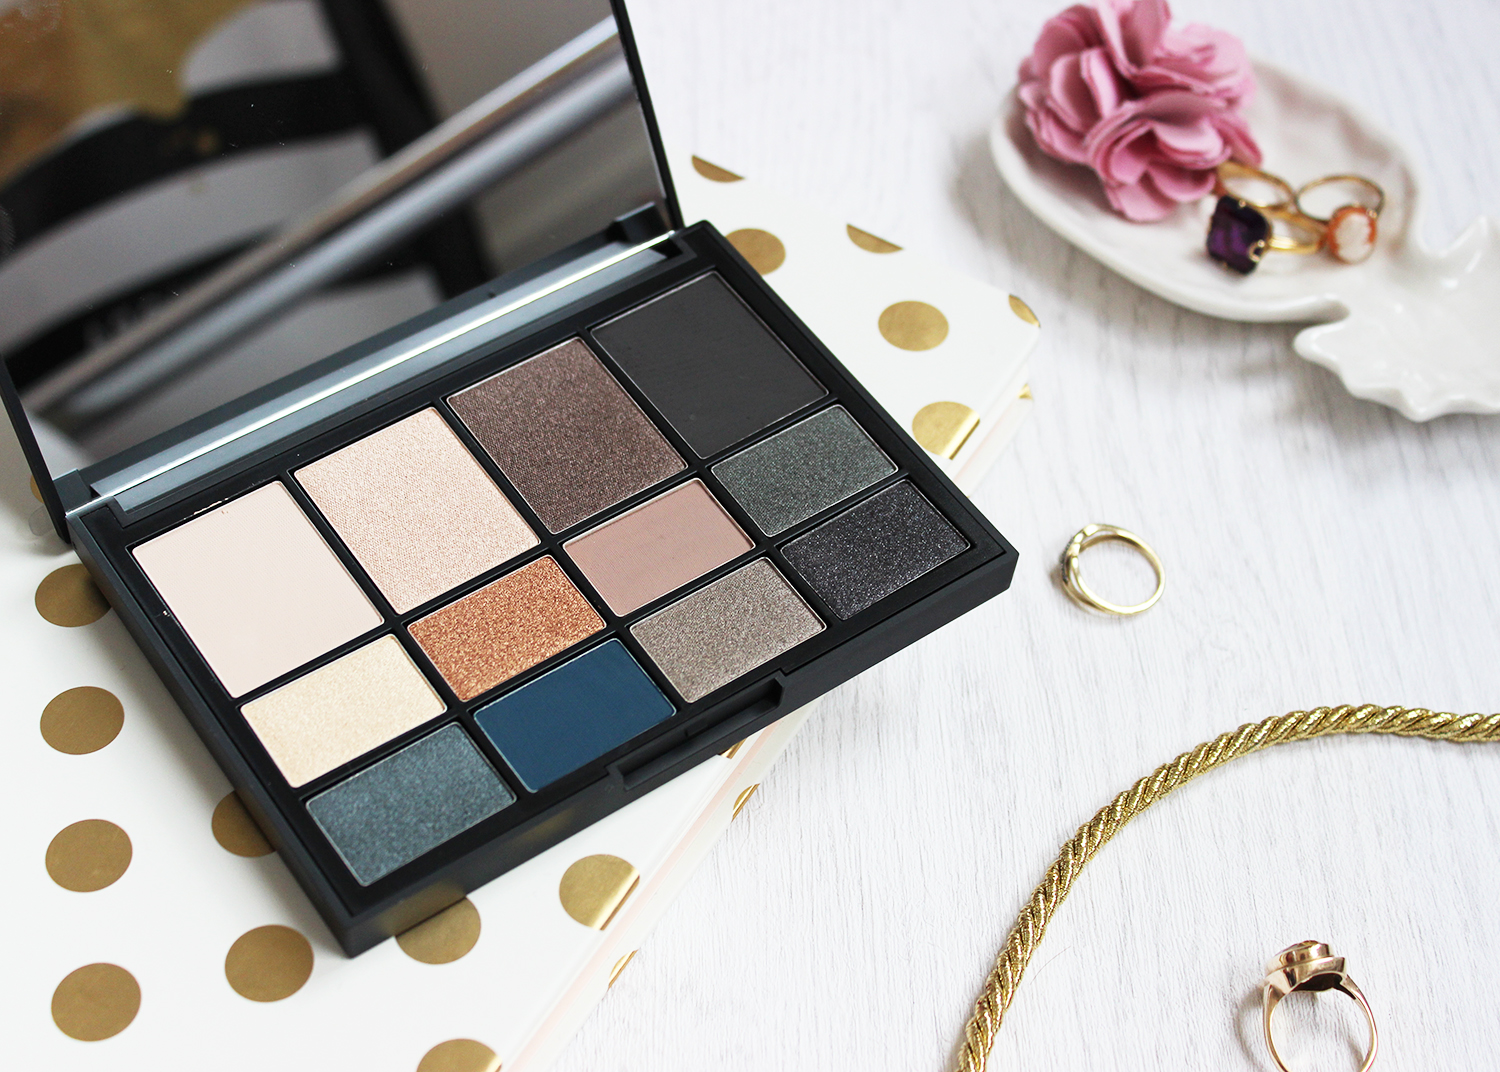 Nars Narsissist L'Amour Tourjours L'Amour eyeshadow palette review swatches